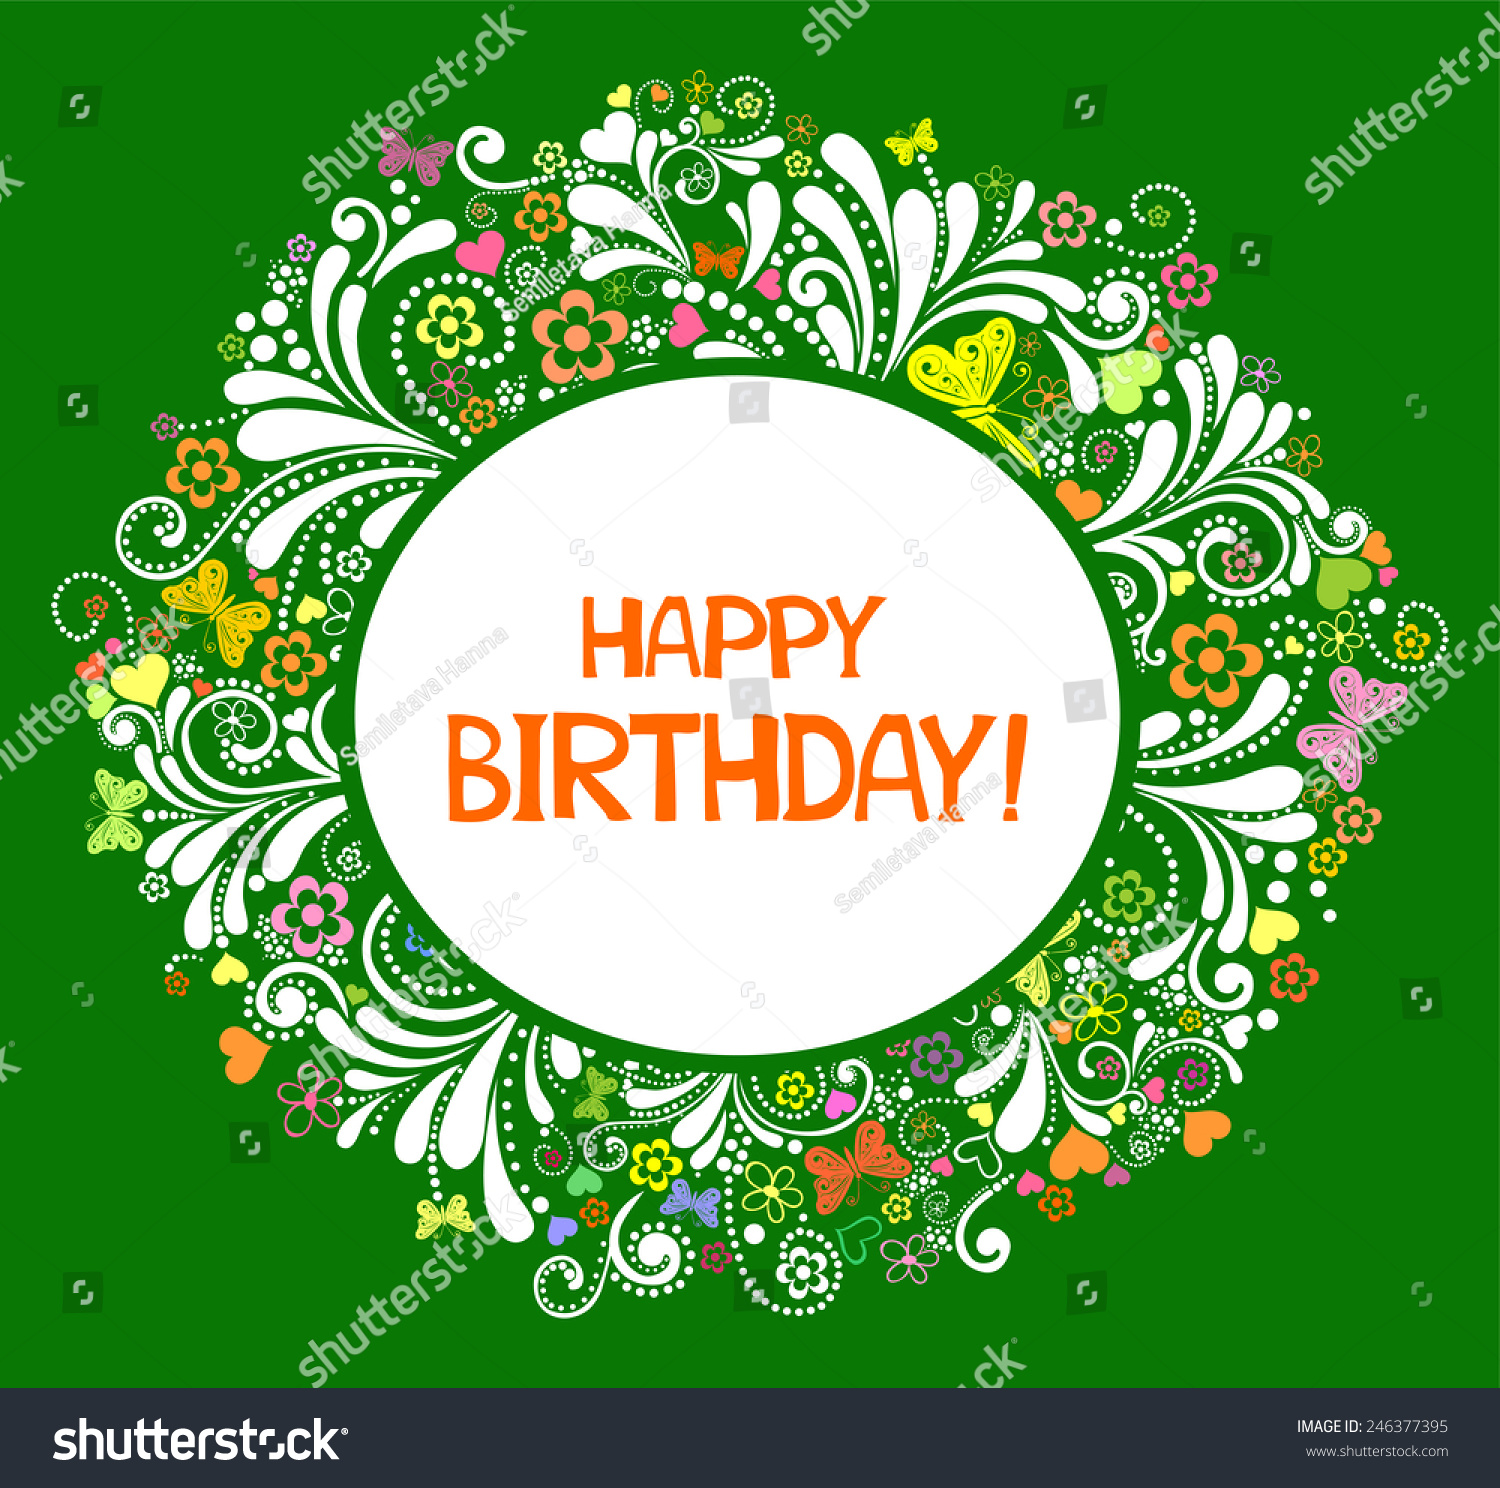 Happy Birthday Card Celebration Green Background Vector – Green Birthday Card